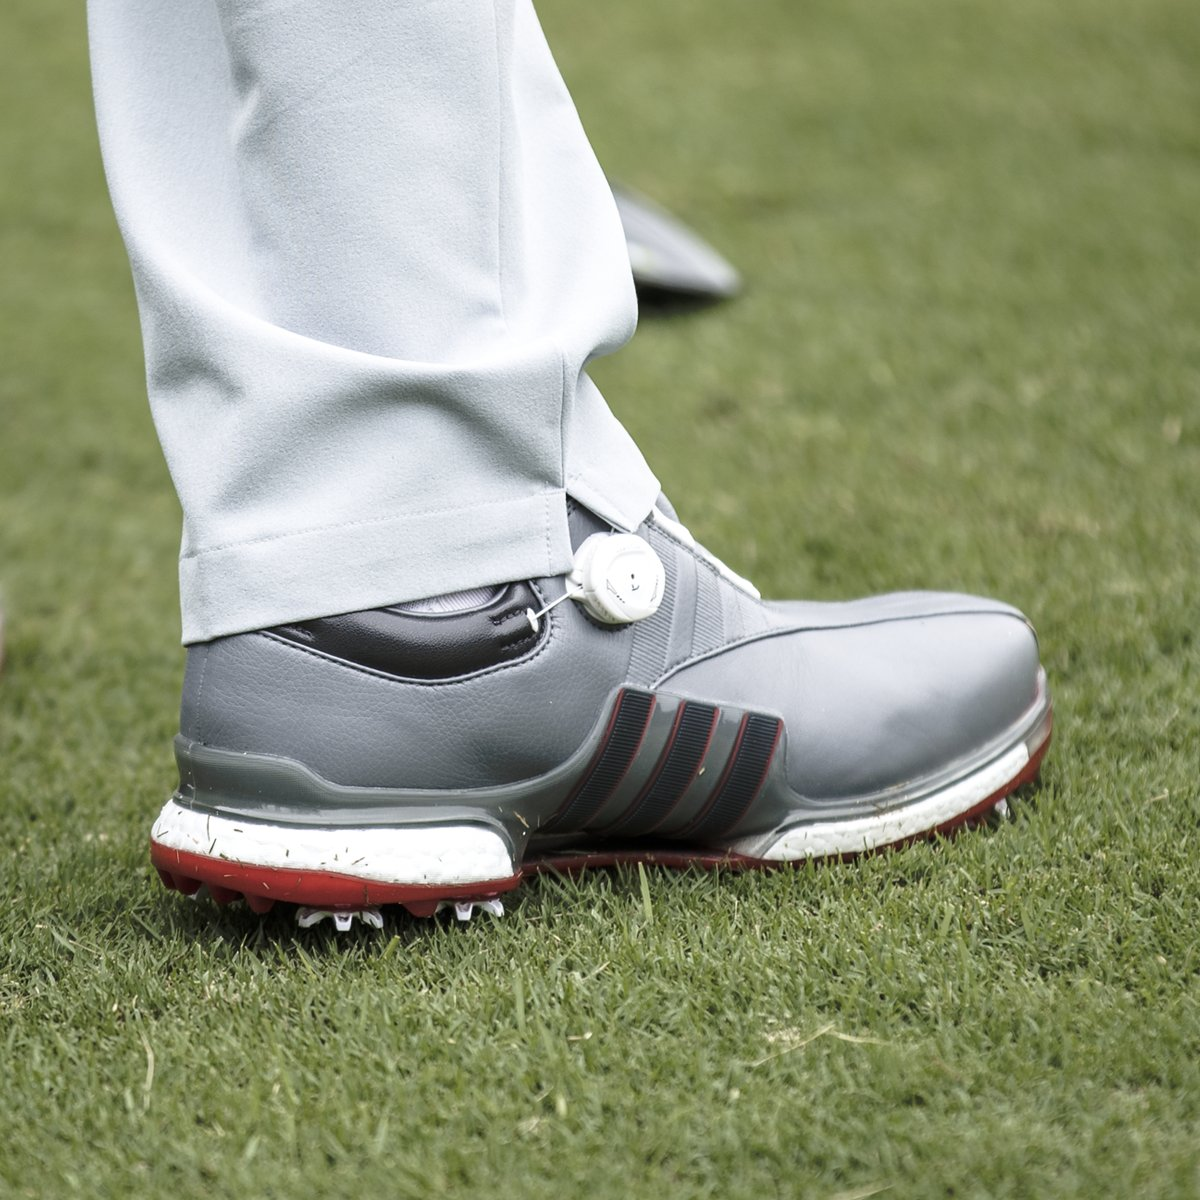 new product 589a1 98e63 adidas Golf on Twitter: